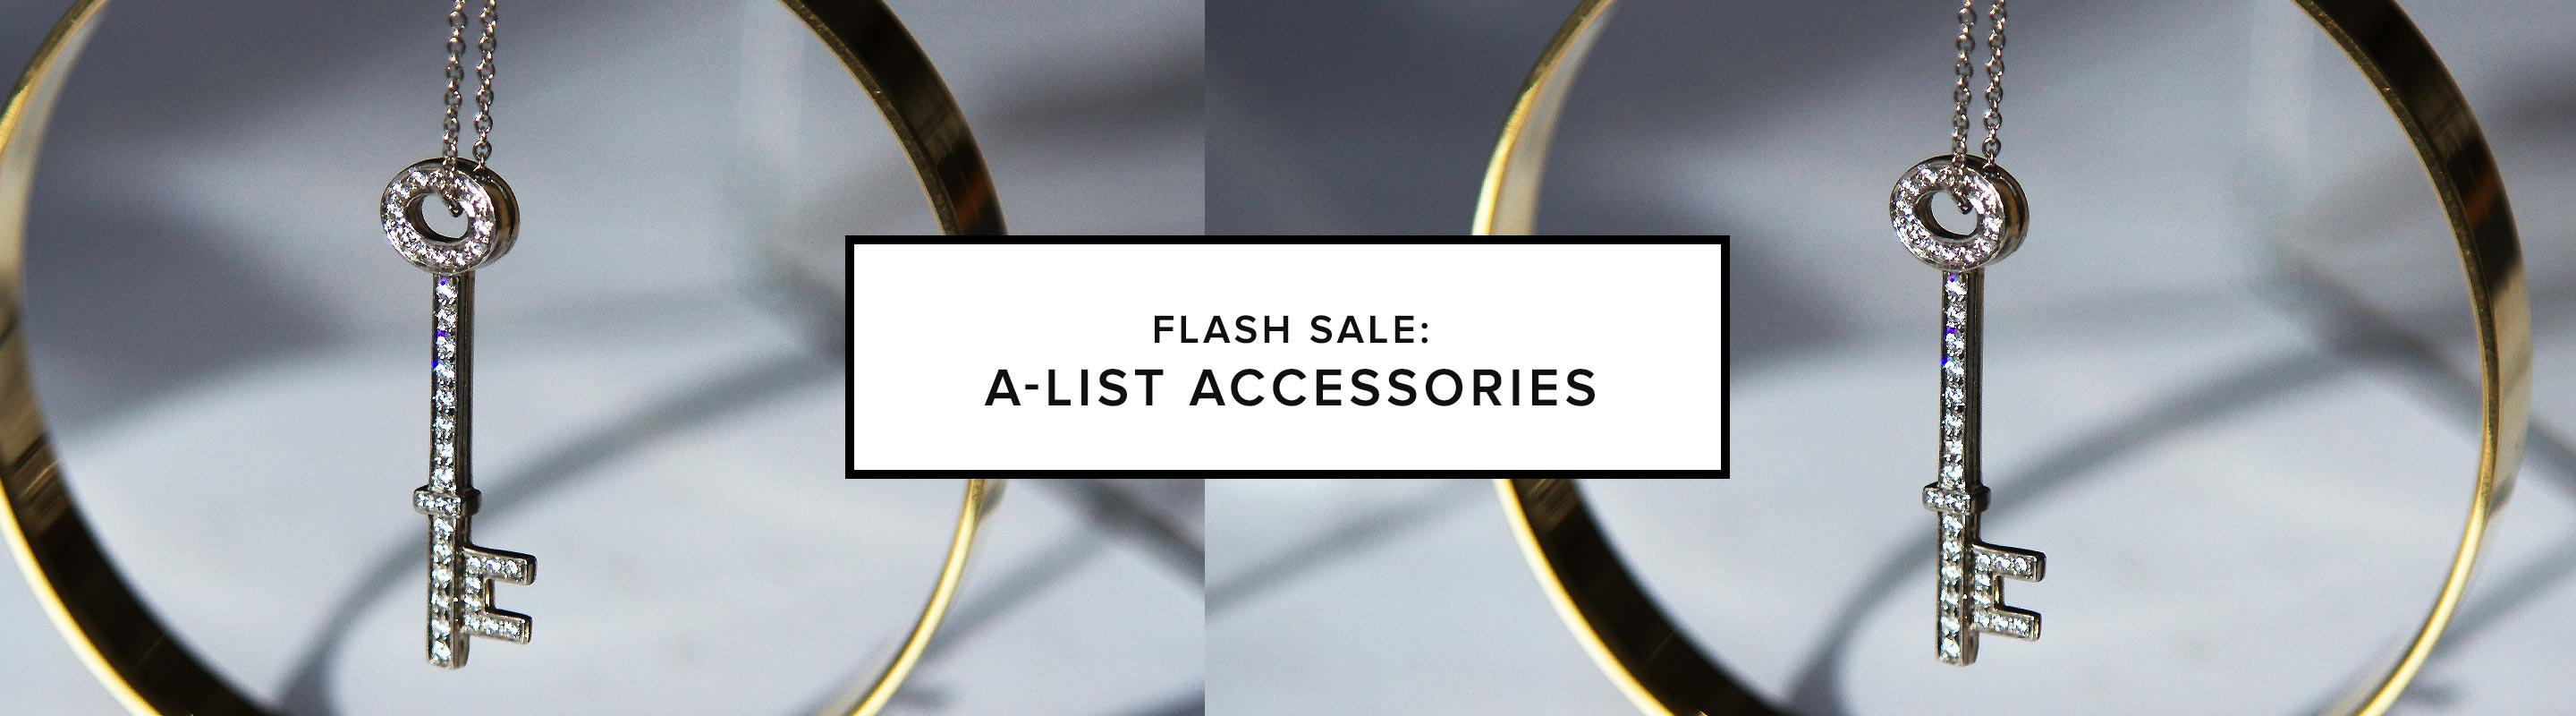 Flash Sale: A-List Accessories